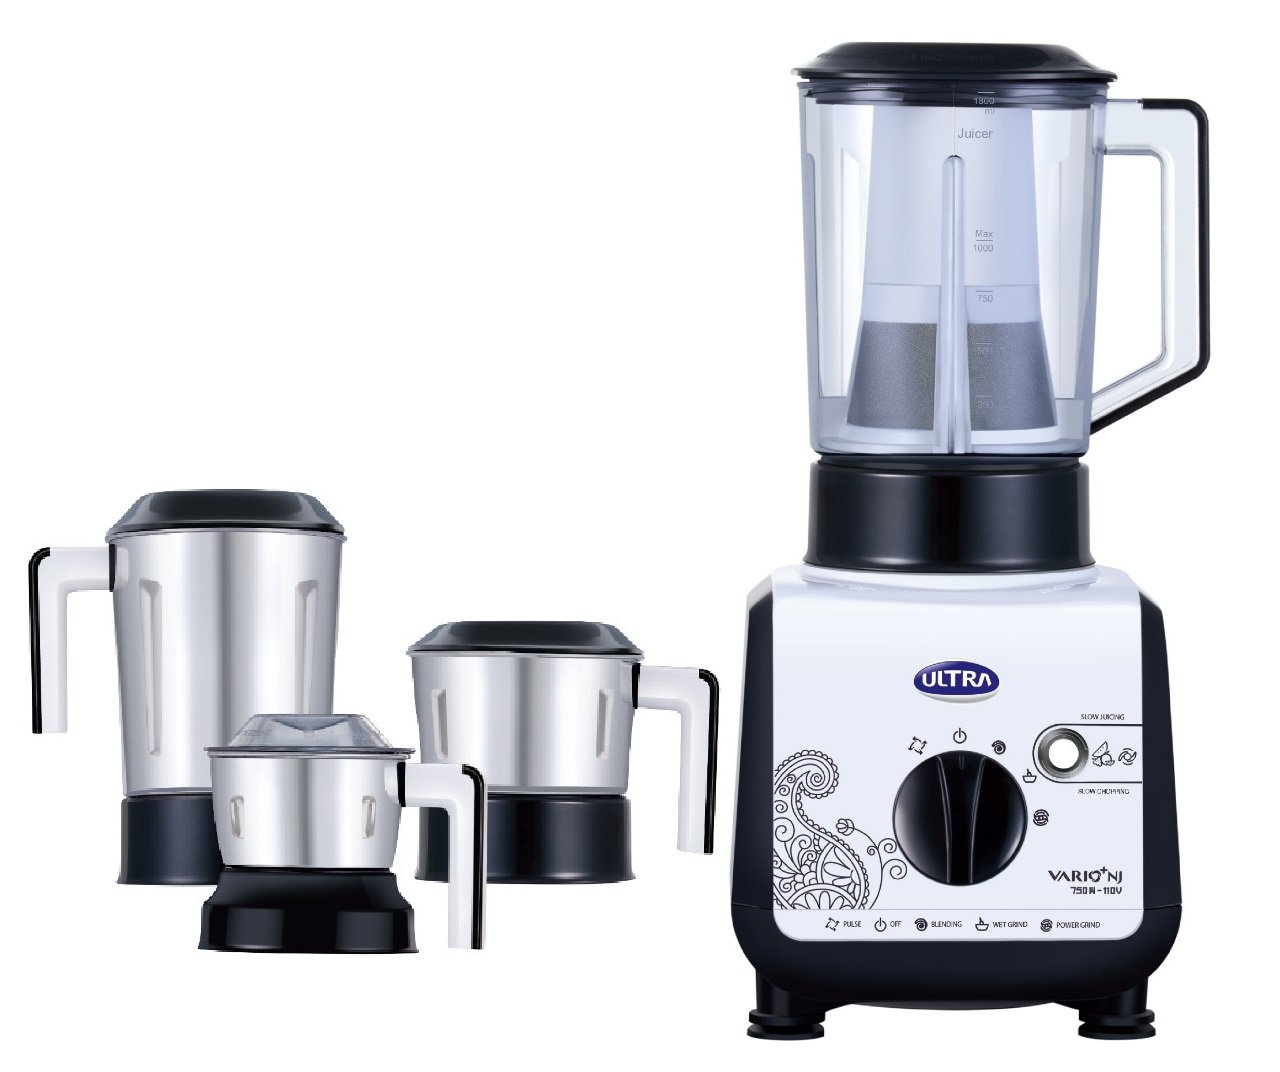 Ultra Vario+ Mixer Grinder with Electronic Speed Sensor, 110 Volts